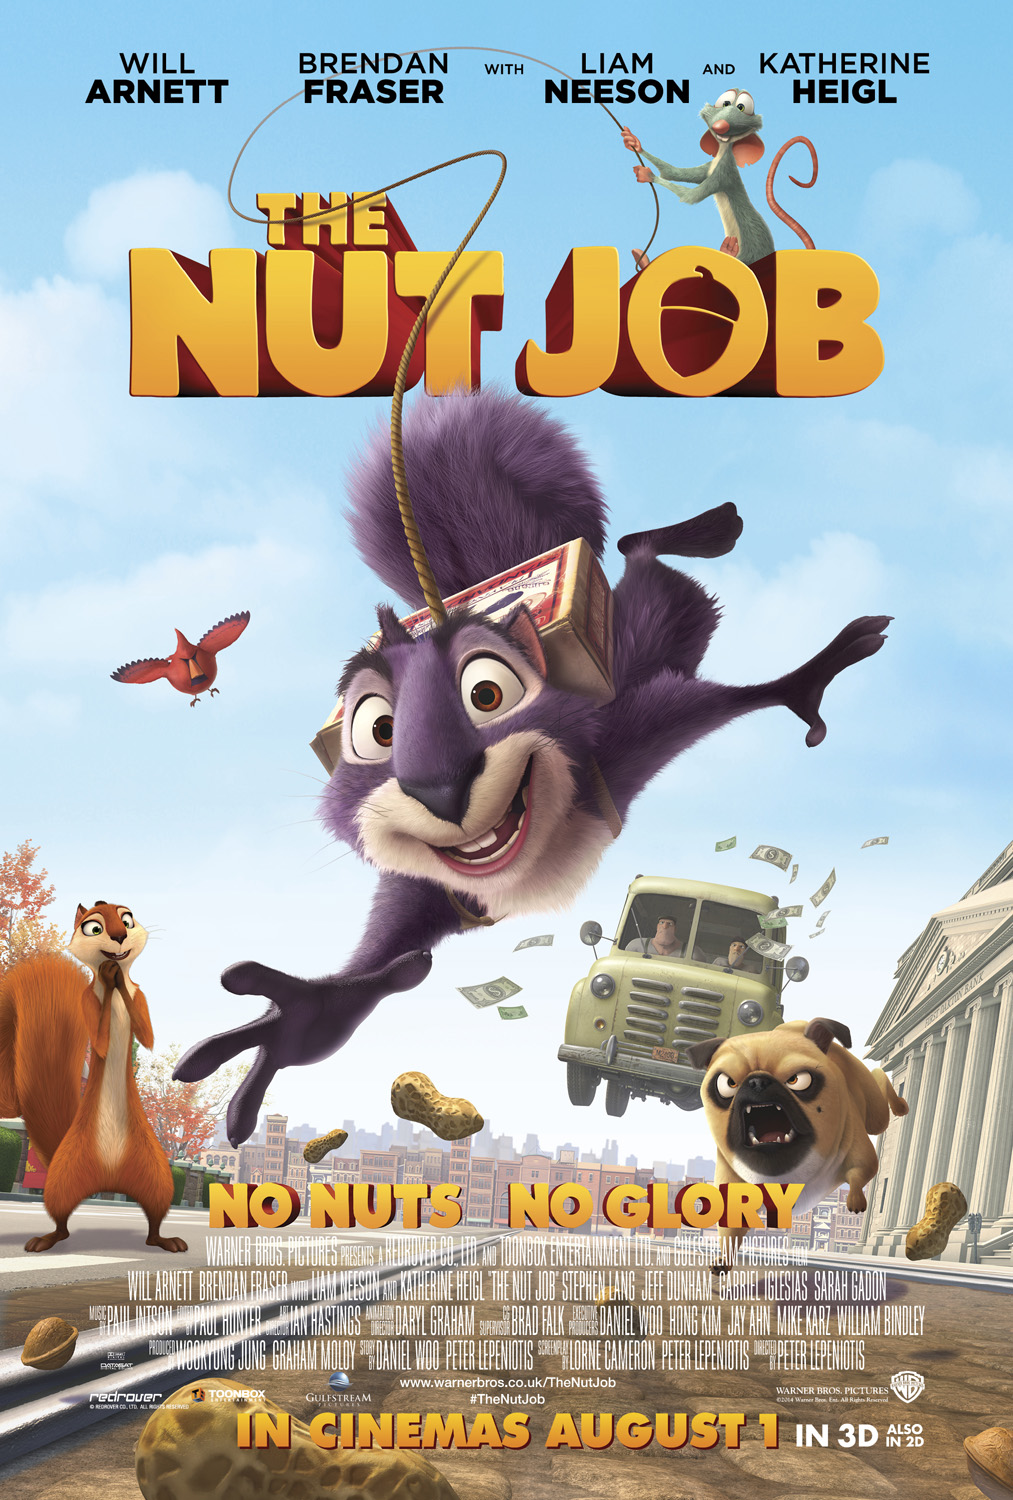 The Nut Job | The Nut Job Wiki | FANDOM powered by Wikia